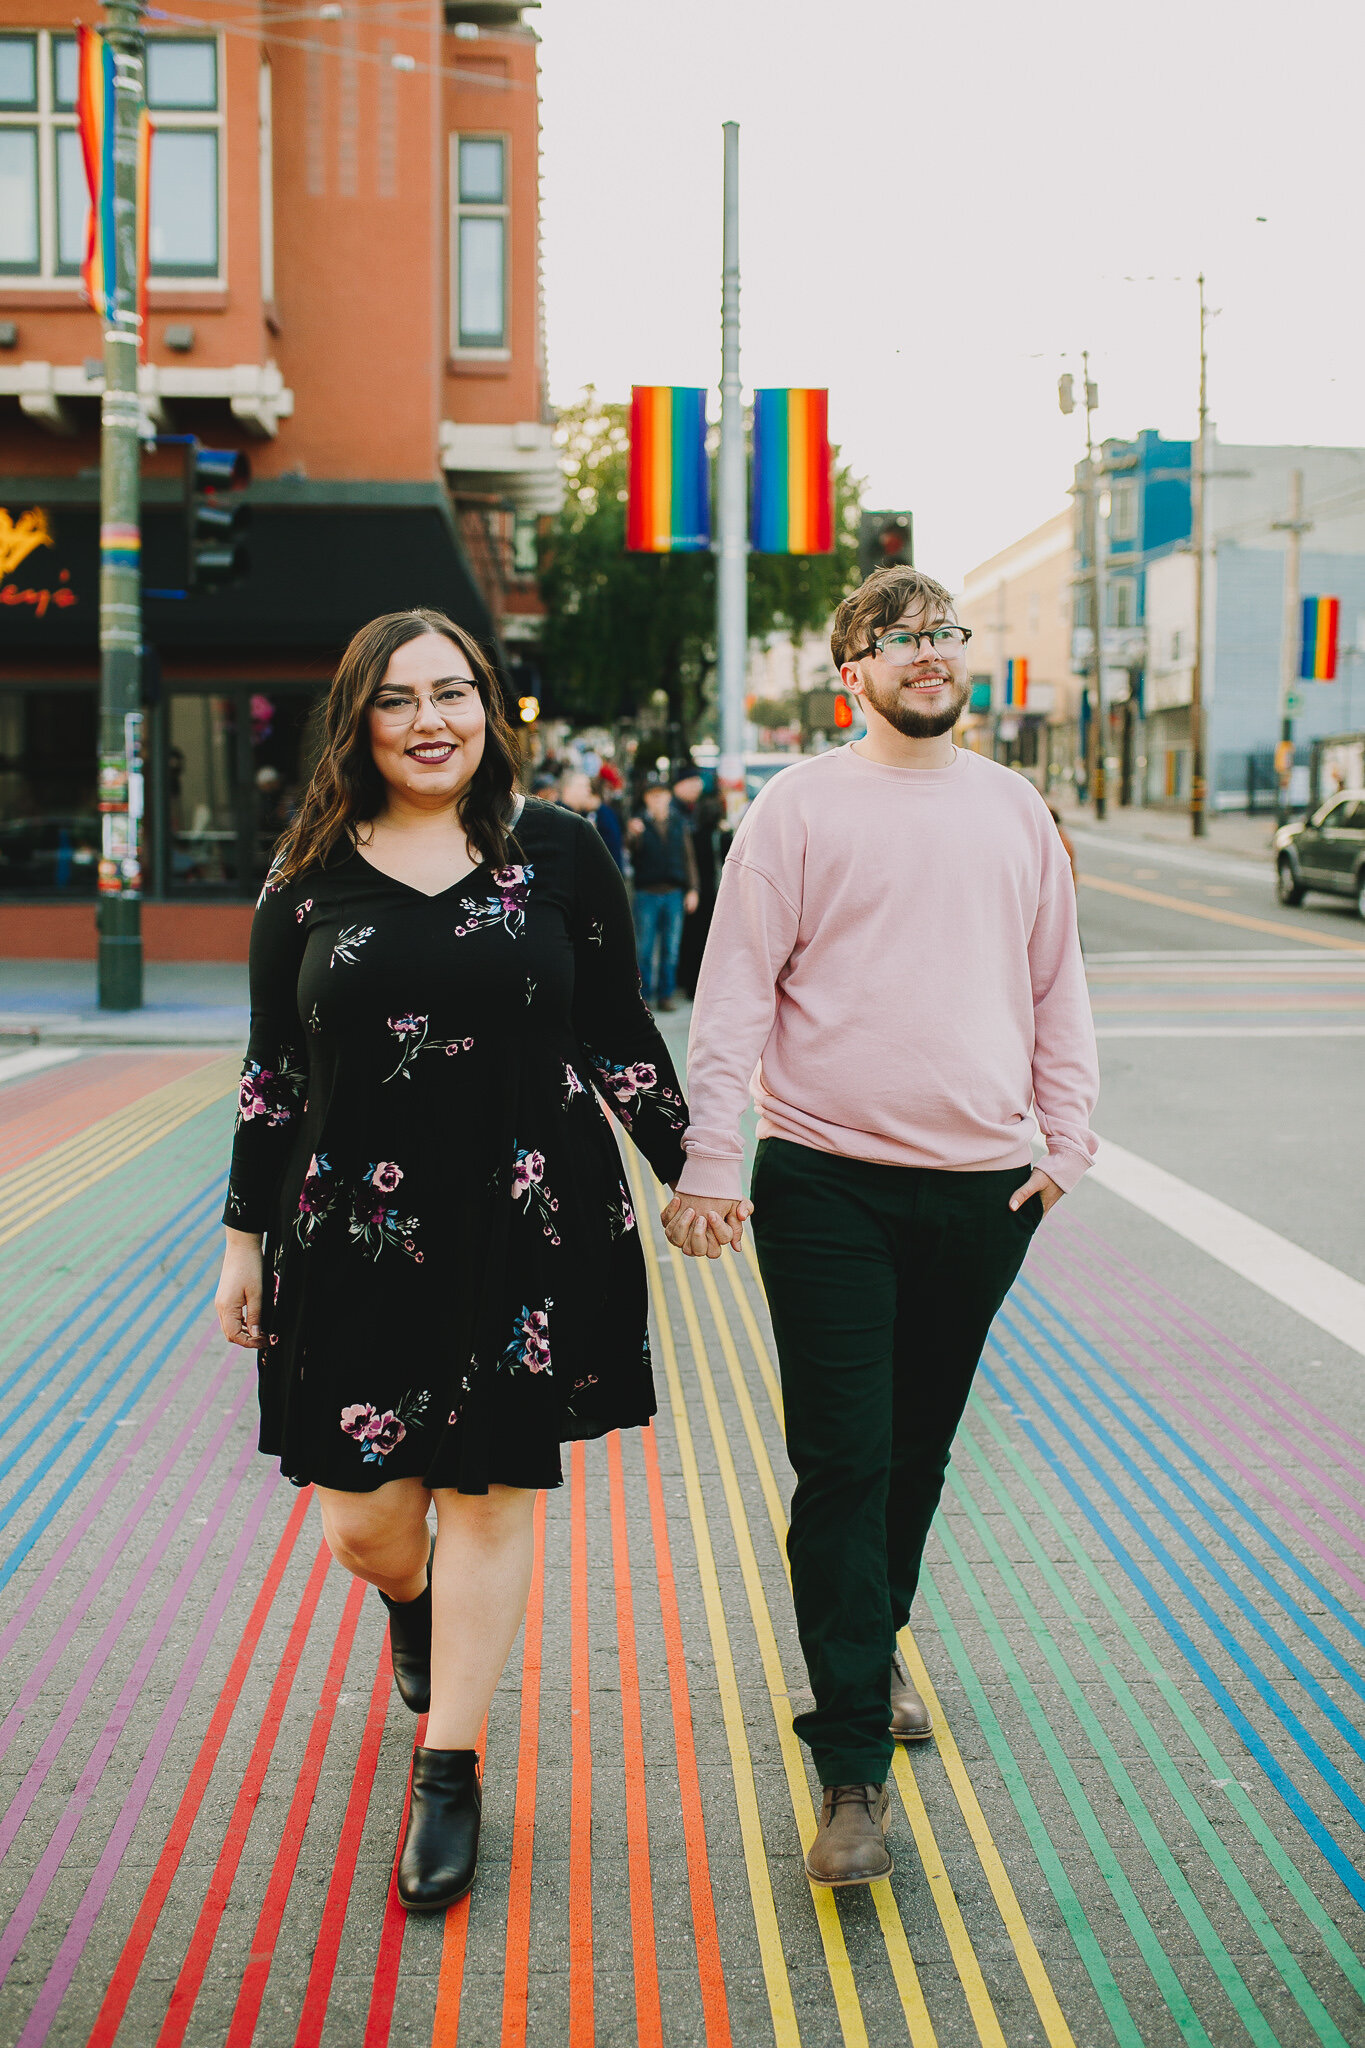 Archer+Inspired+Photography+Castro+District+San+Francisco+California+LGBTQ+Bay+Area+engagement+session-124.jpg